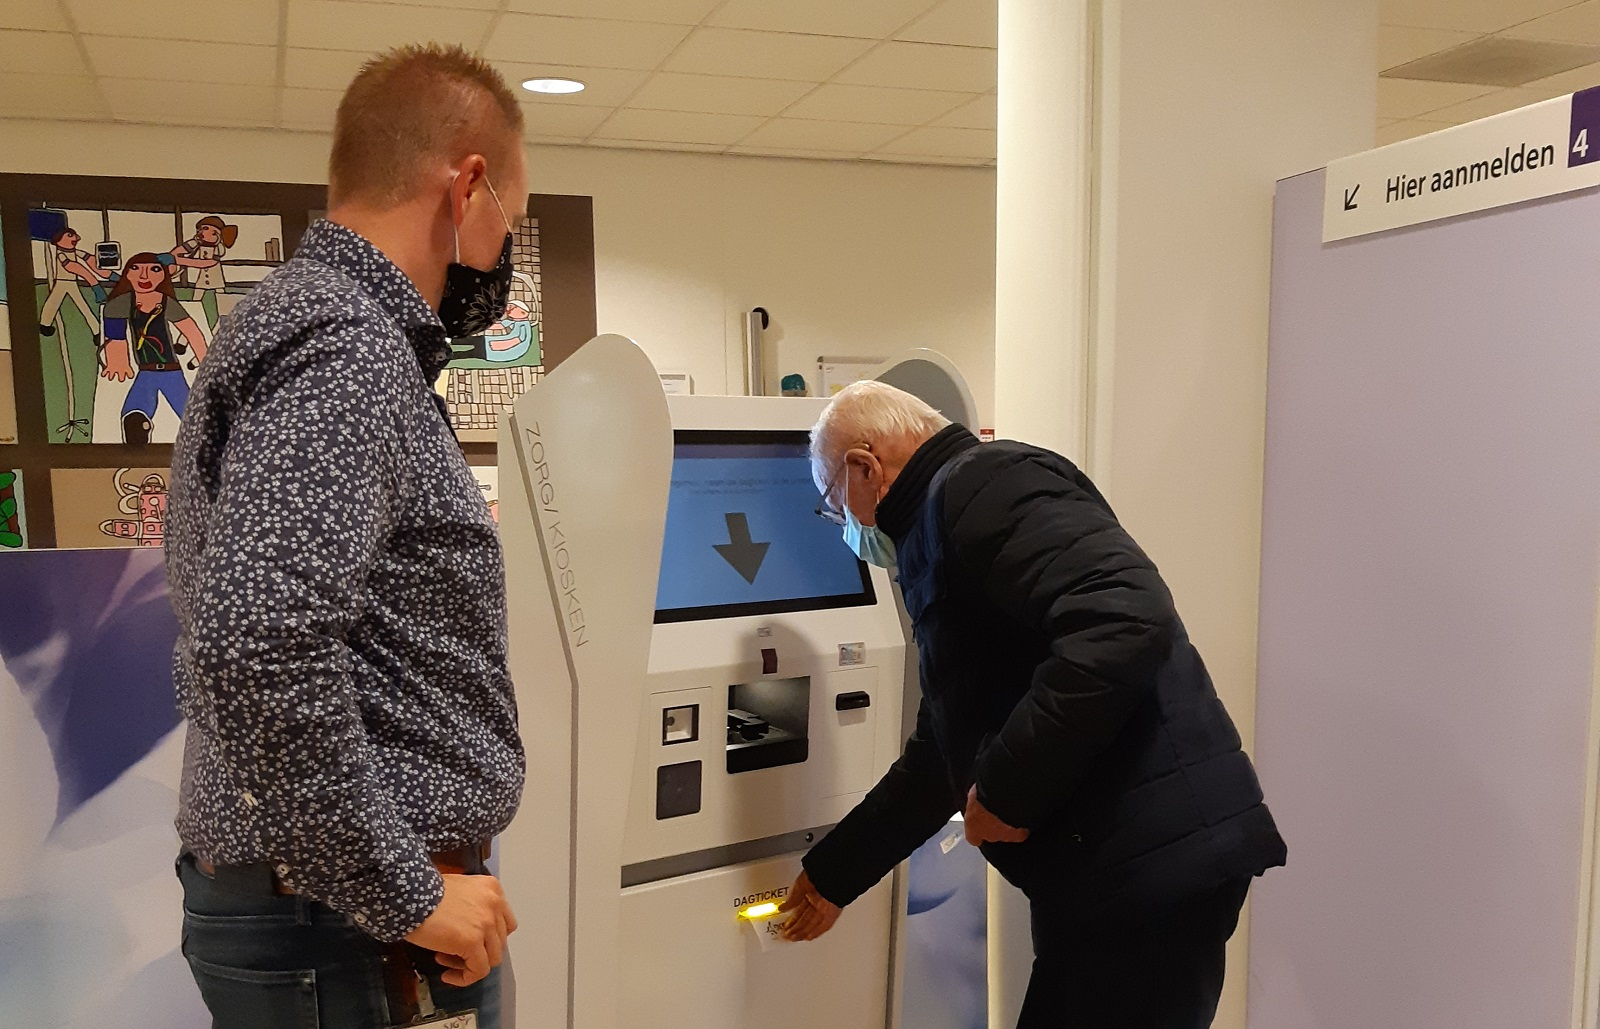 Patient checking in at a hospital kiosk